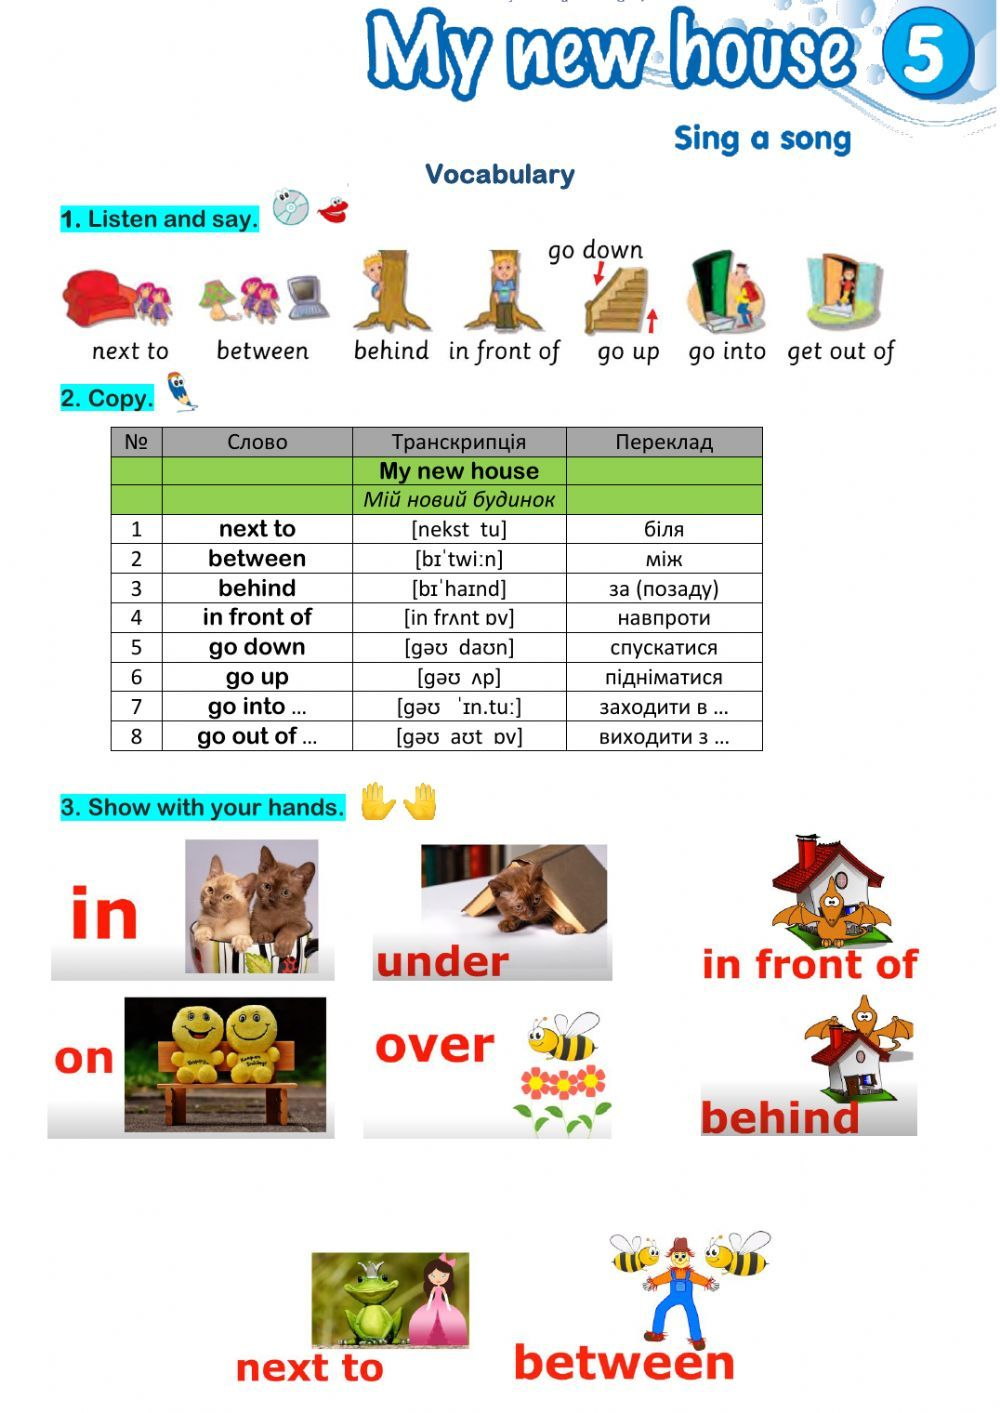 Prepositions Of Place Online Worksheet For Grade 3 You Can Do The Exercises Online In 2021 Alphabet Worksheets Preschool Worksheets English As A Second Language Esl Online worksheets for grade english